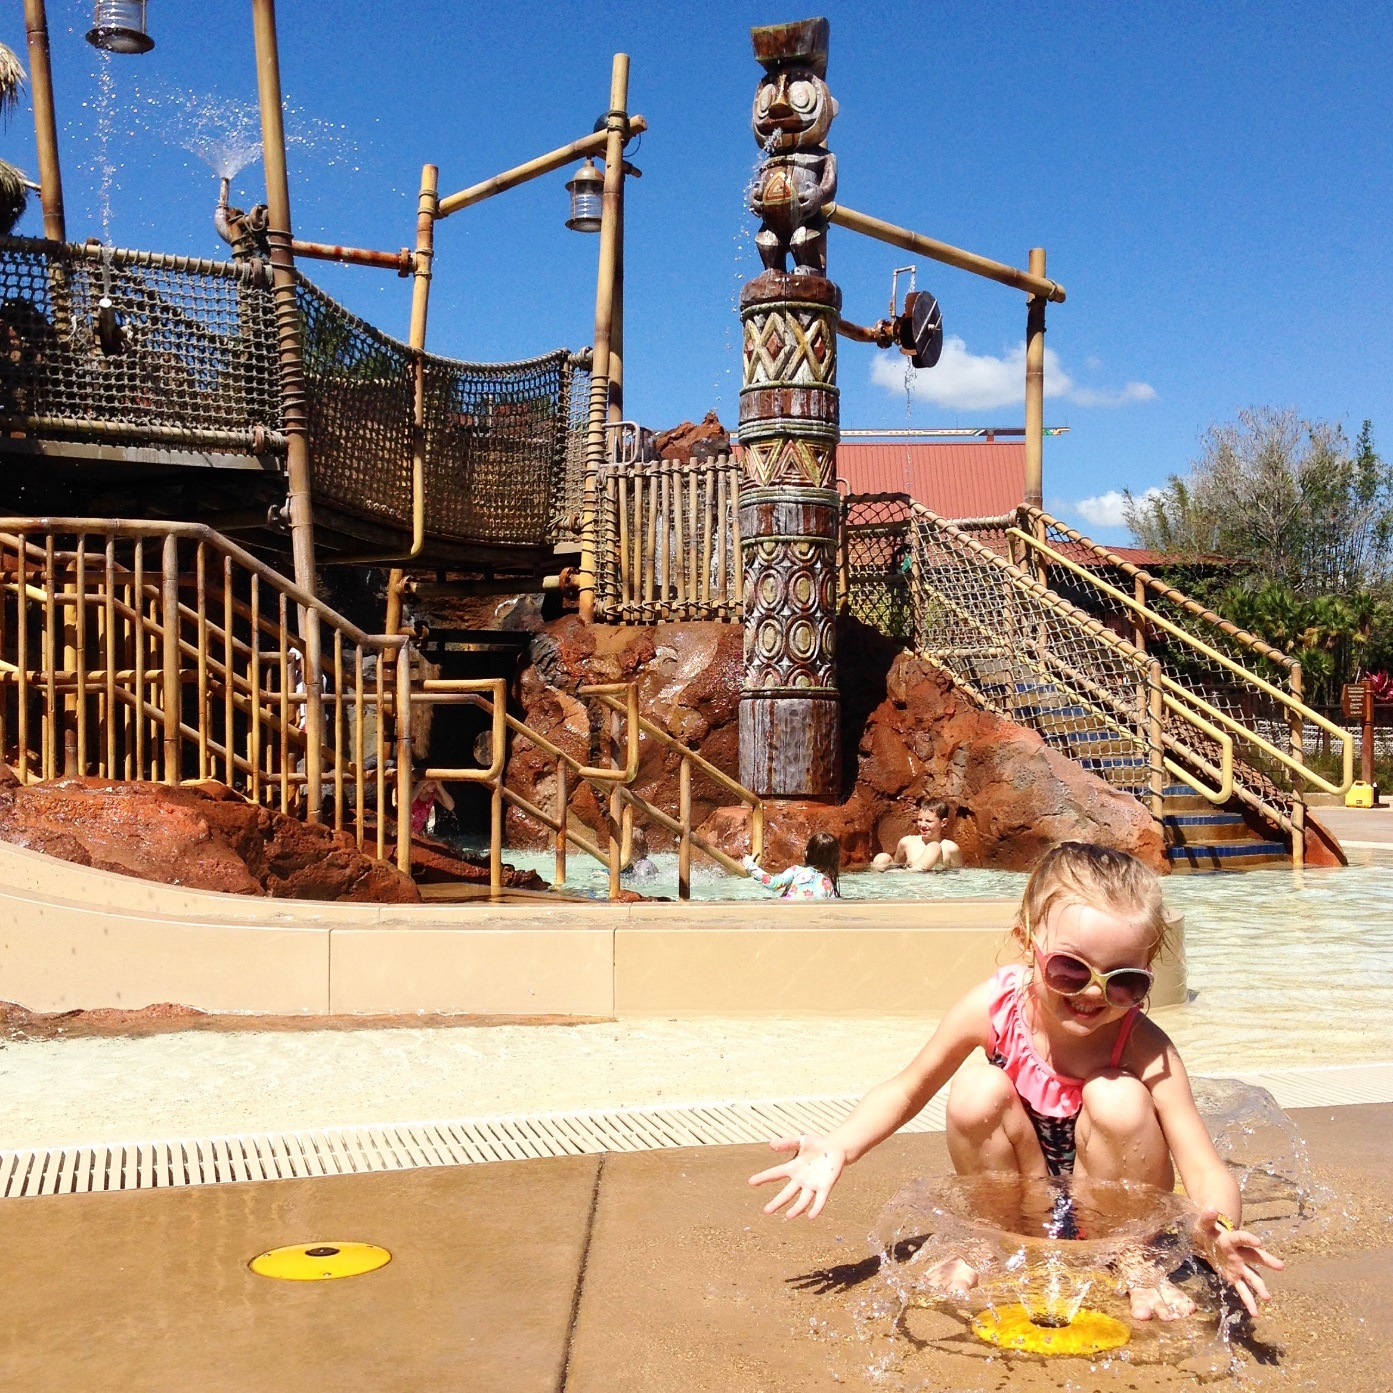 Disney's Polynesian Splash Pad